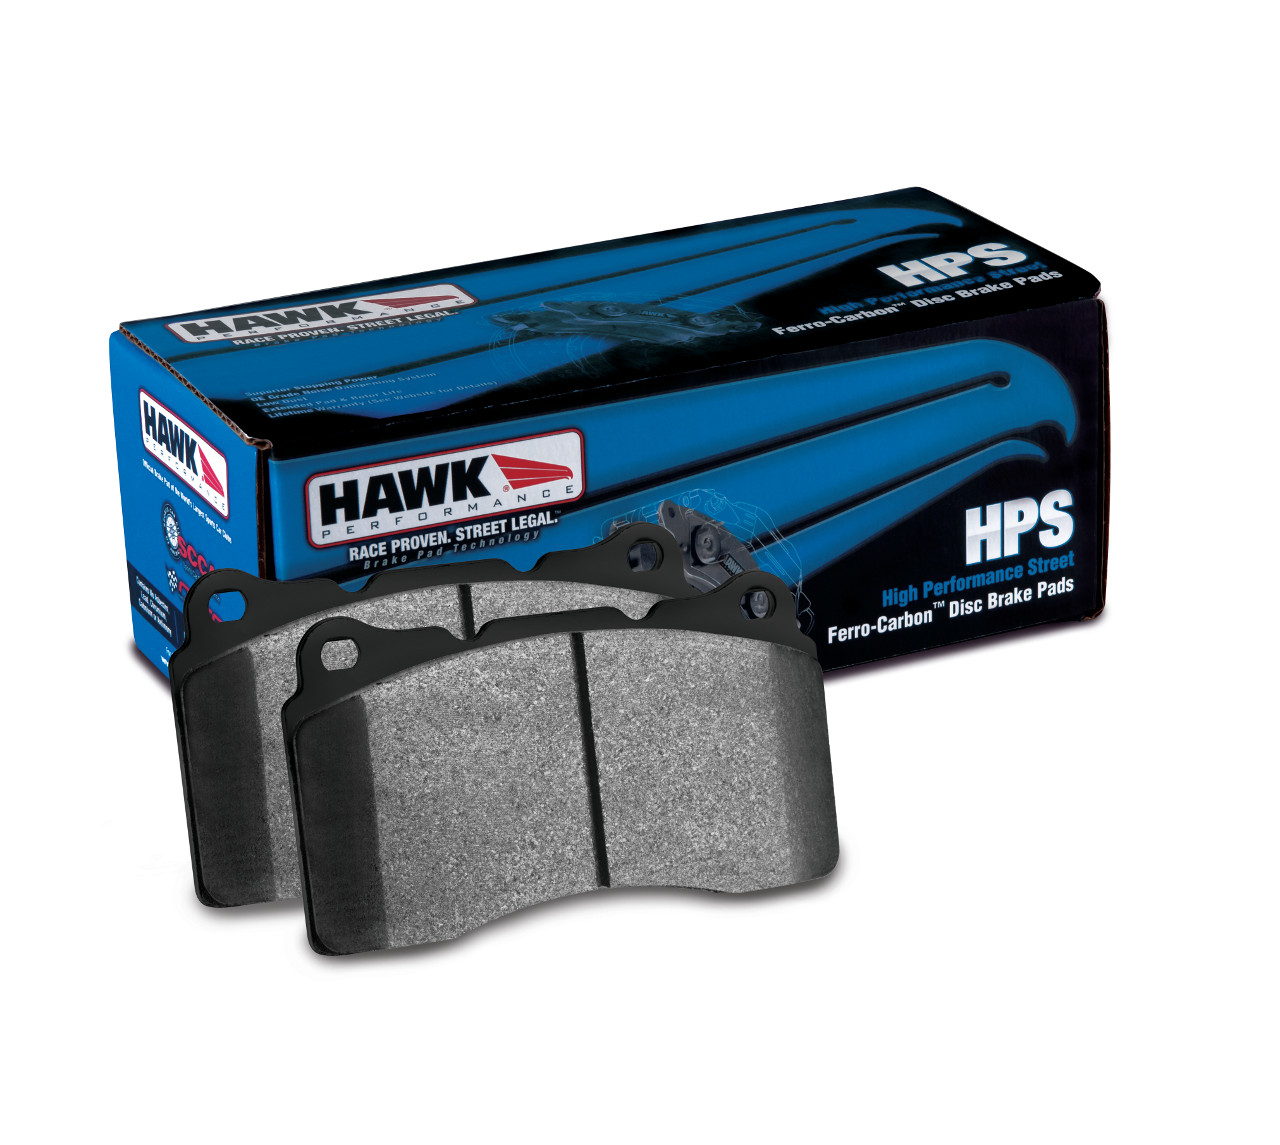 Hawk 02-06 RSX Base / 07-13 Fit HPS Brake Pads: Front